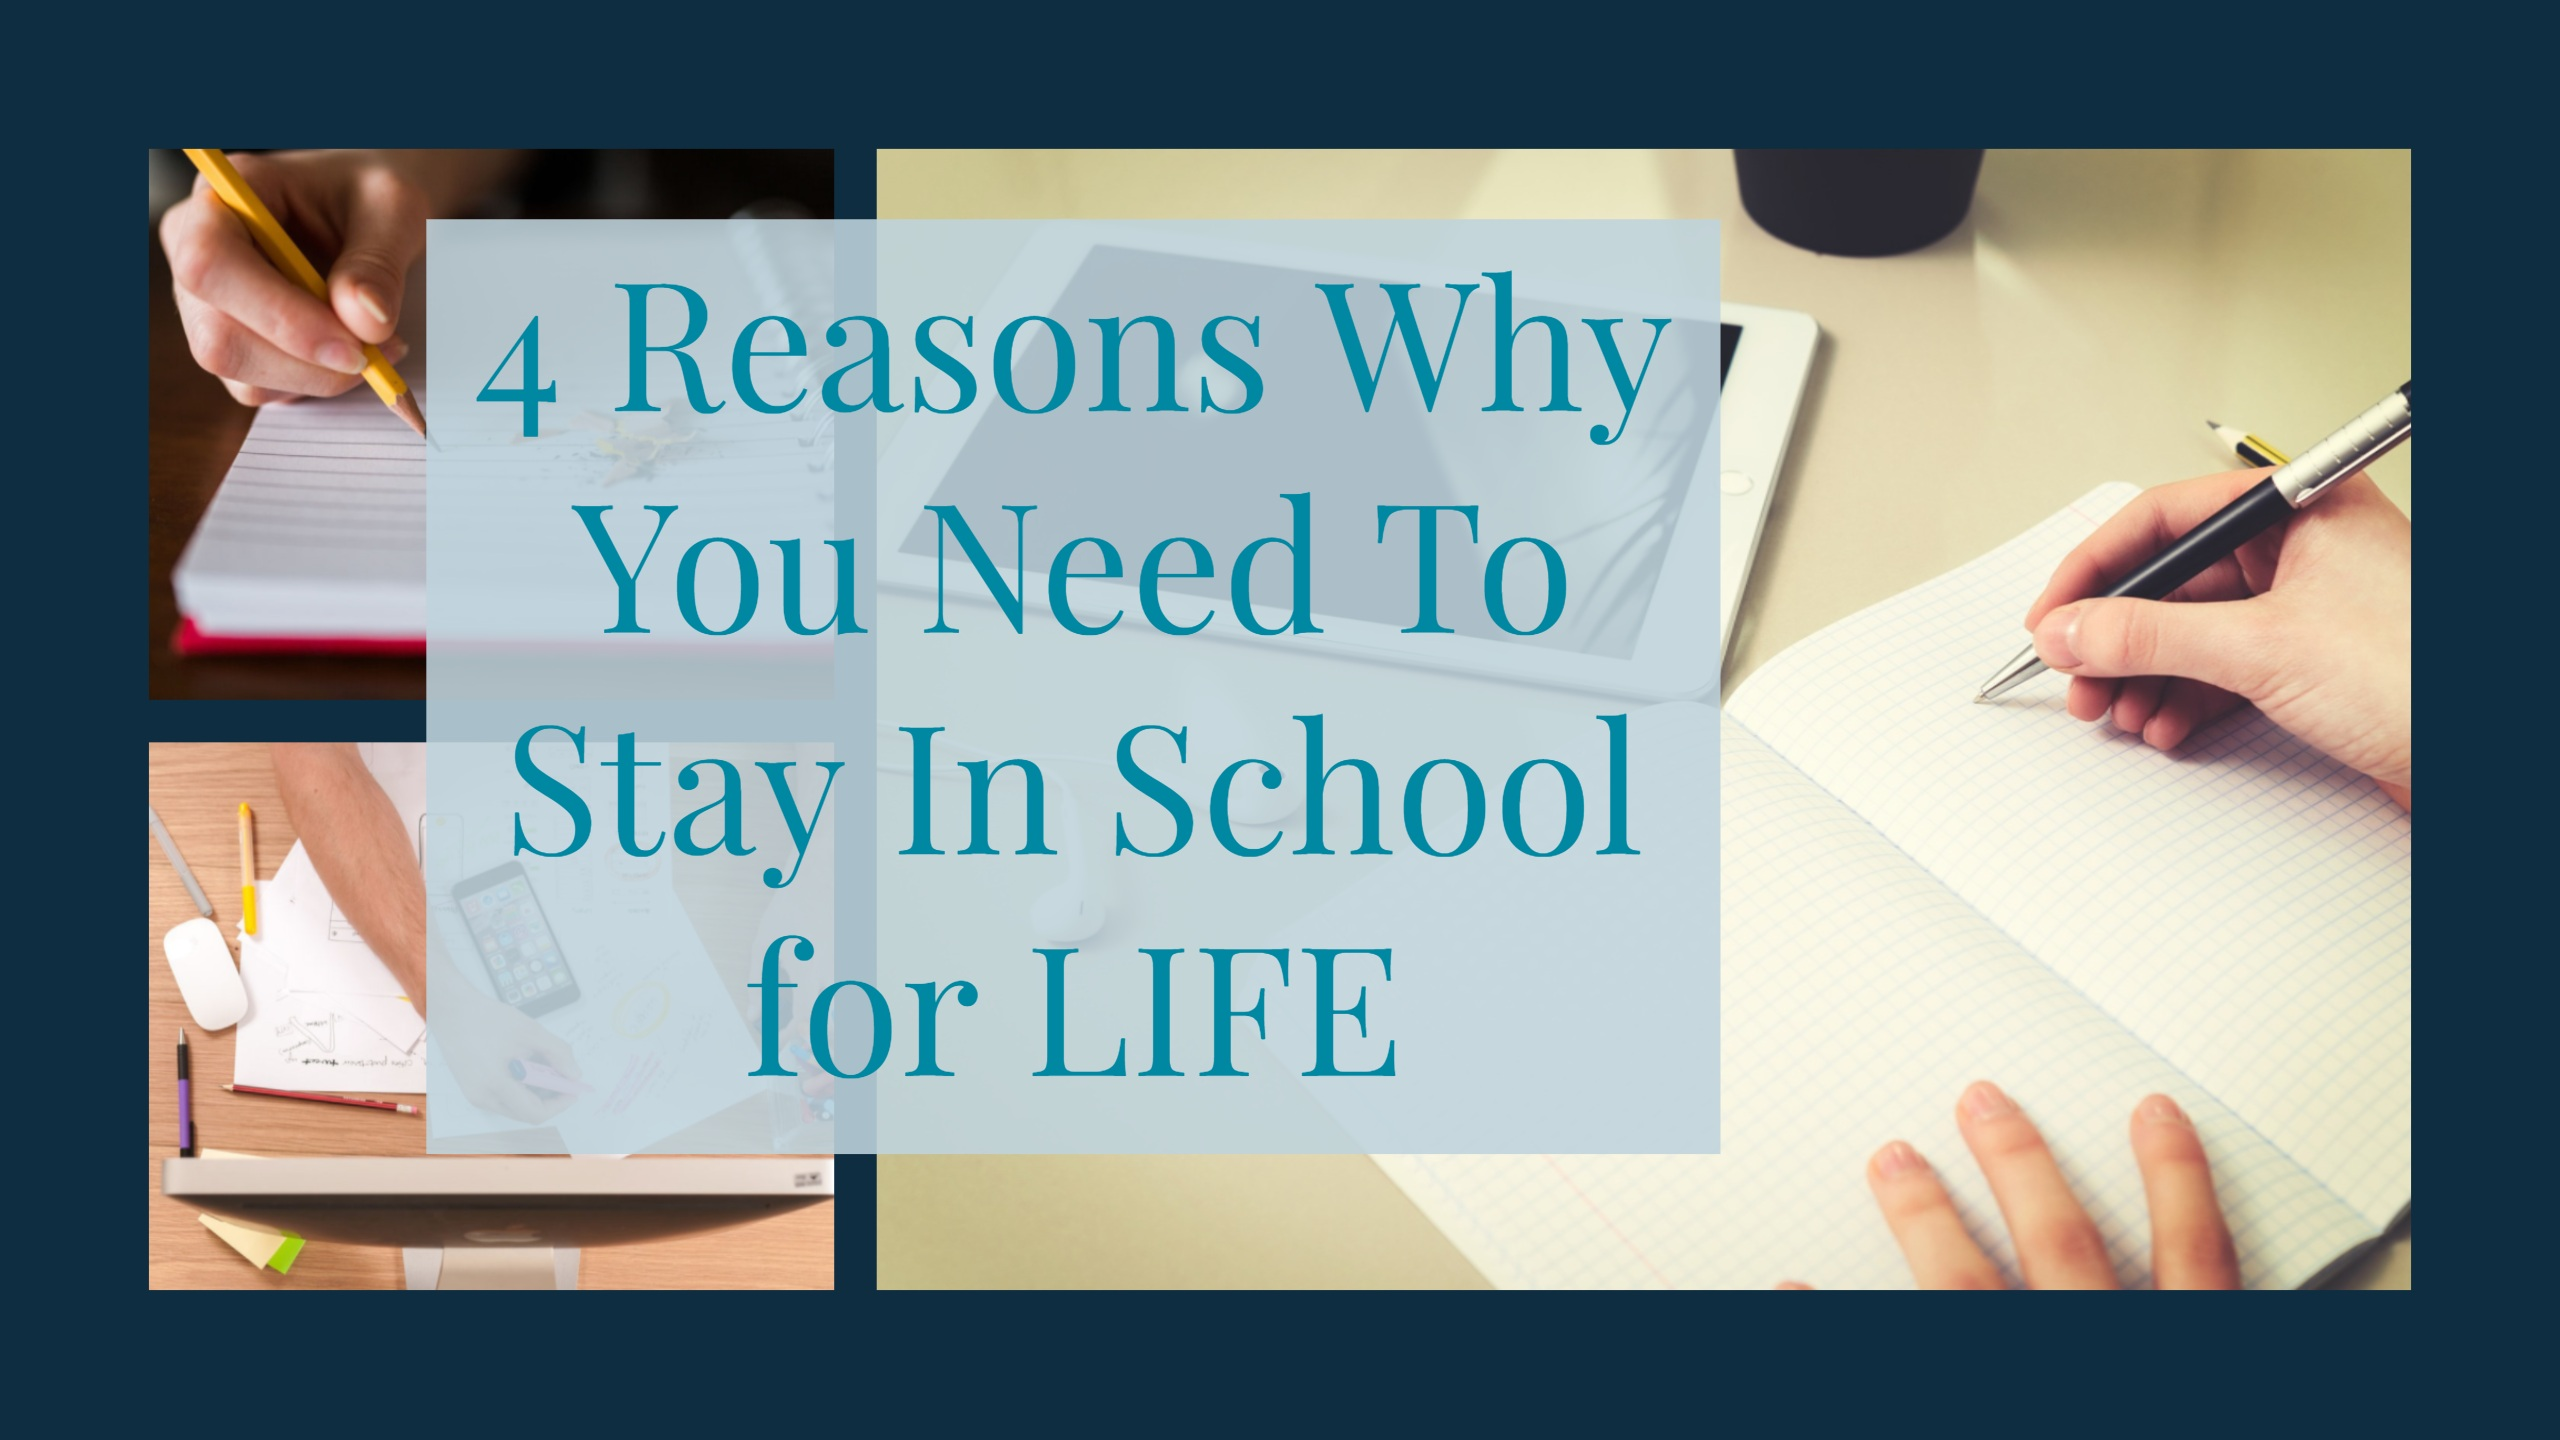 4 Reasons Why You Need to Stay In School For Life